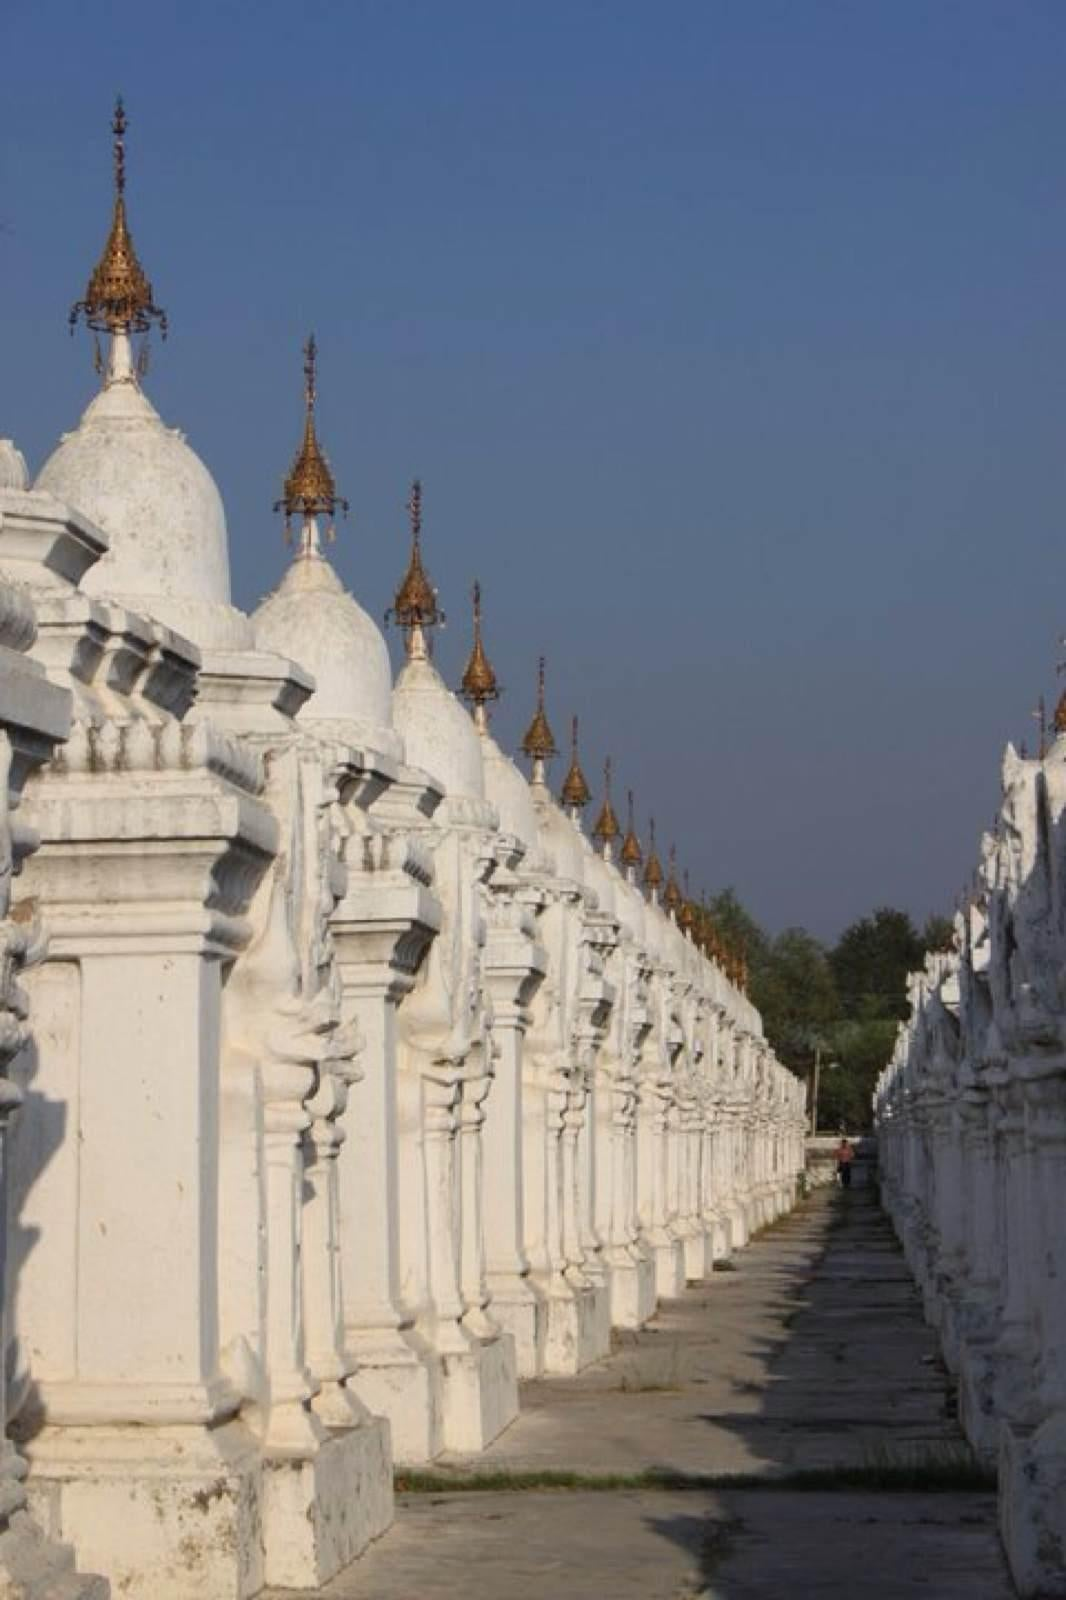 Blanco en Mandalay